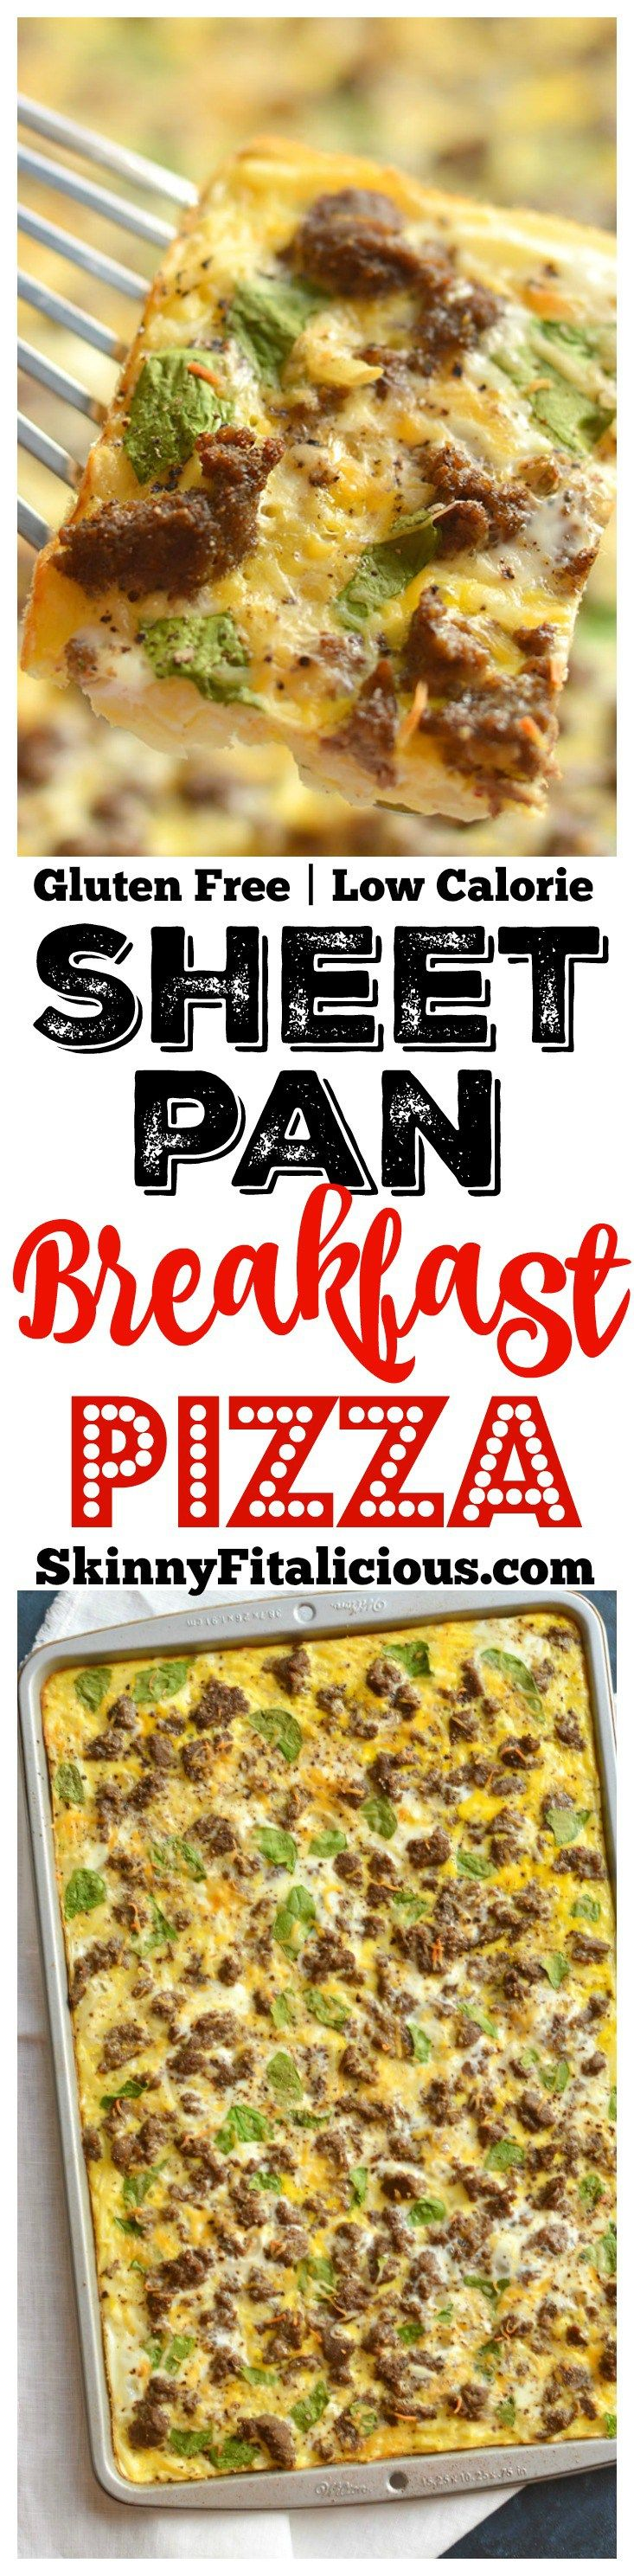 Sheet Pan Breakfast Pizza! Your favorite breakfast pizza turned healthy. Layered with healthy ingredients, this breakfast pizza has big flavor for less calories. Baked on a sheet pan for easy cleanup! (Paleo Breakfast Pizza)